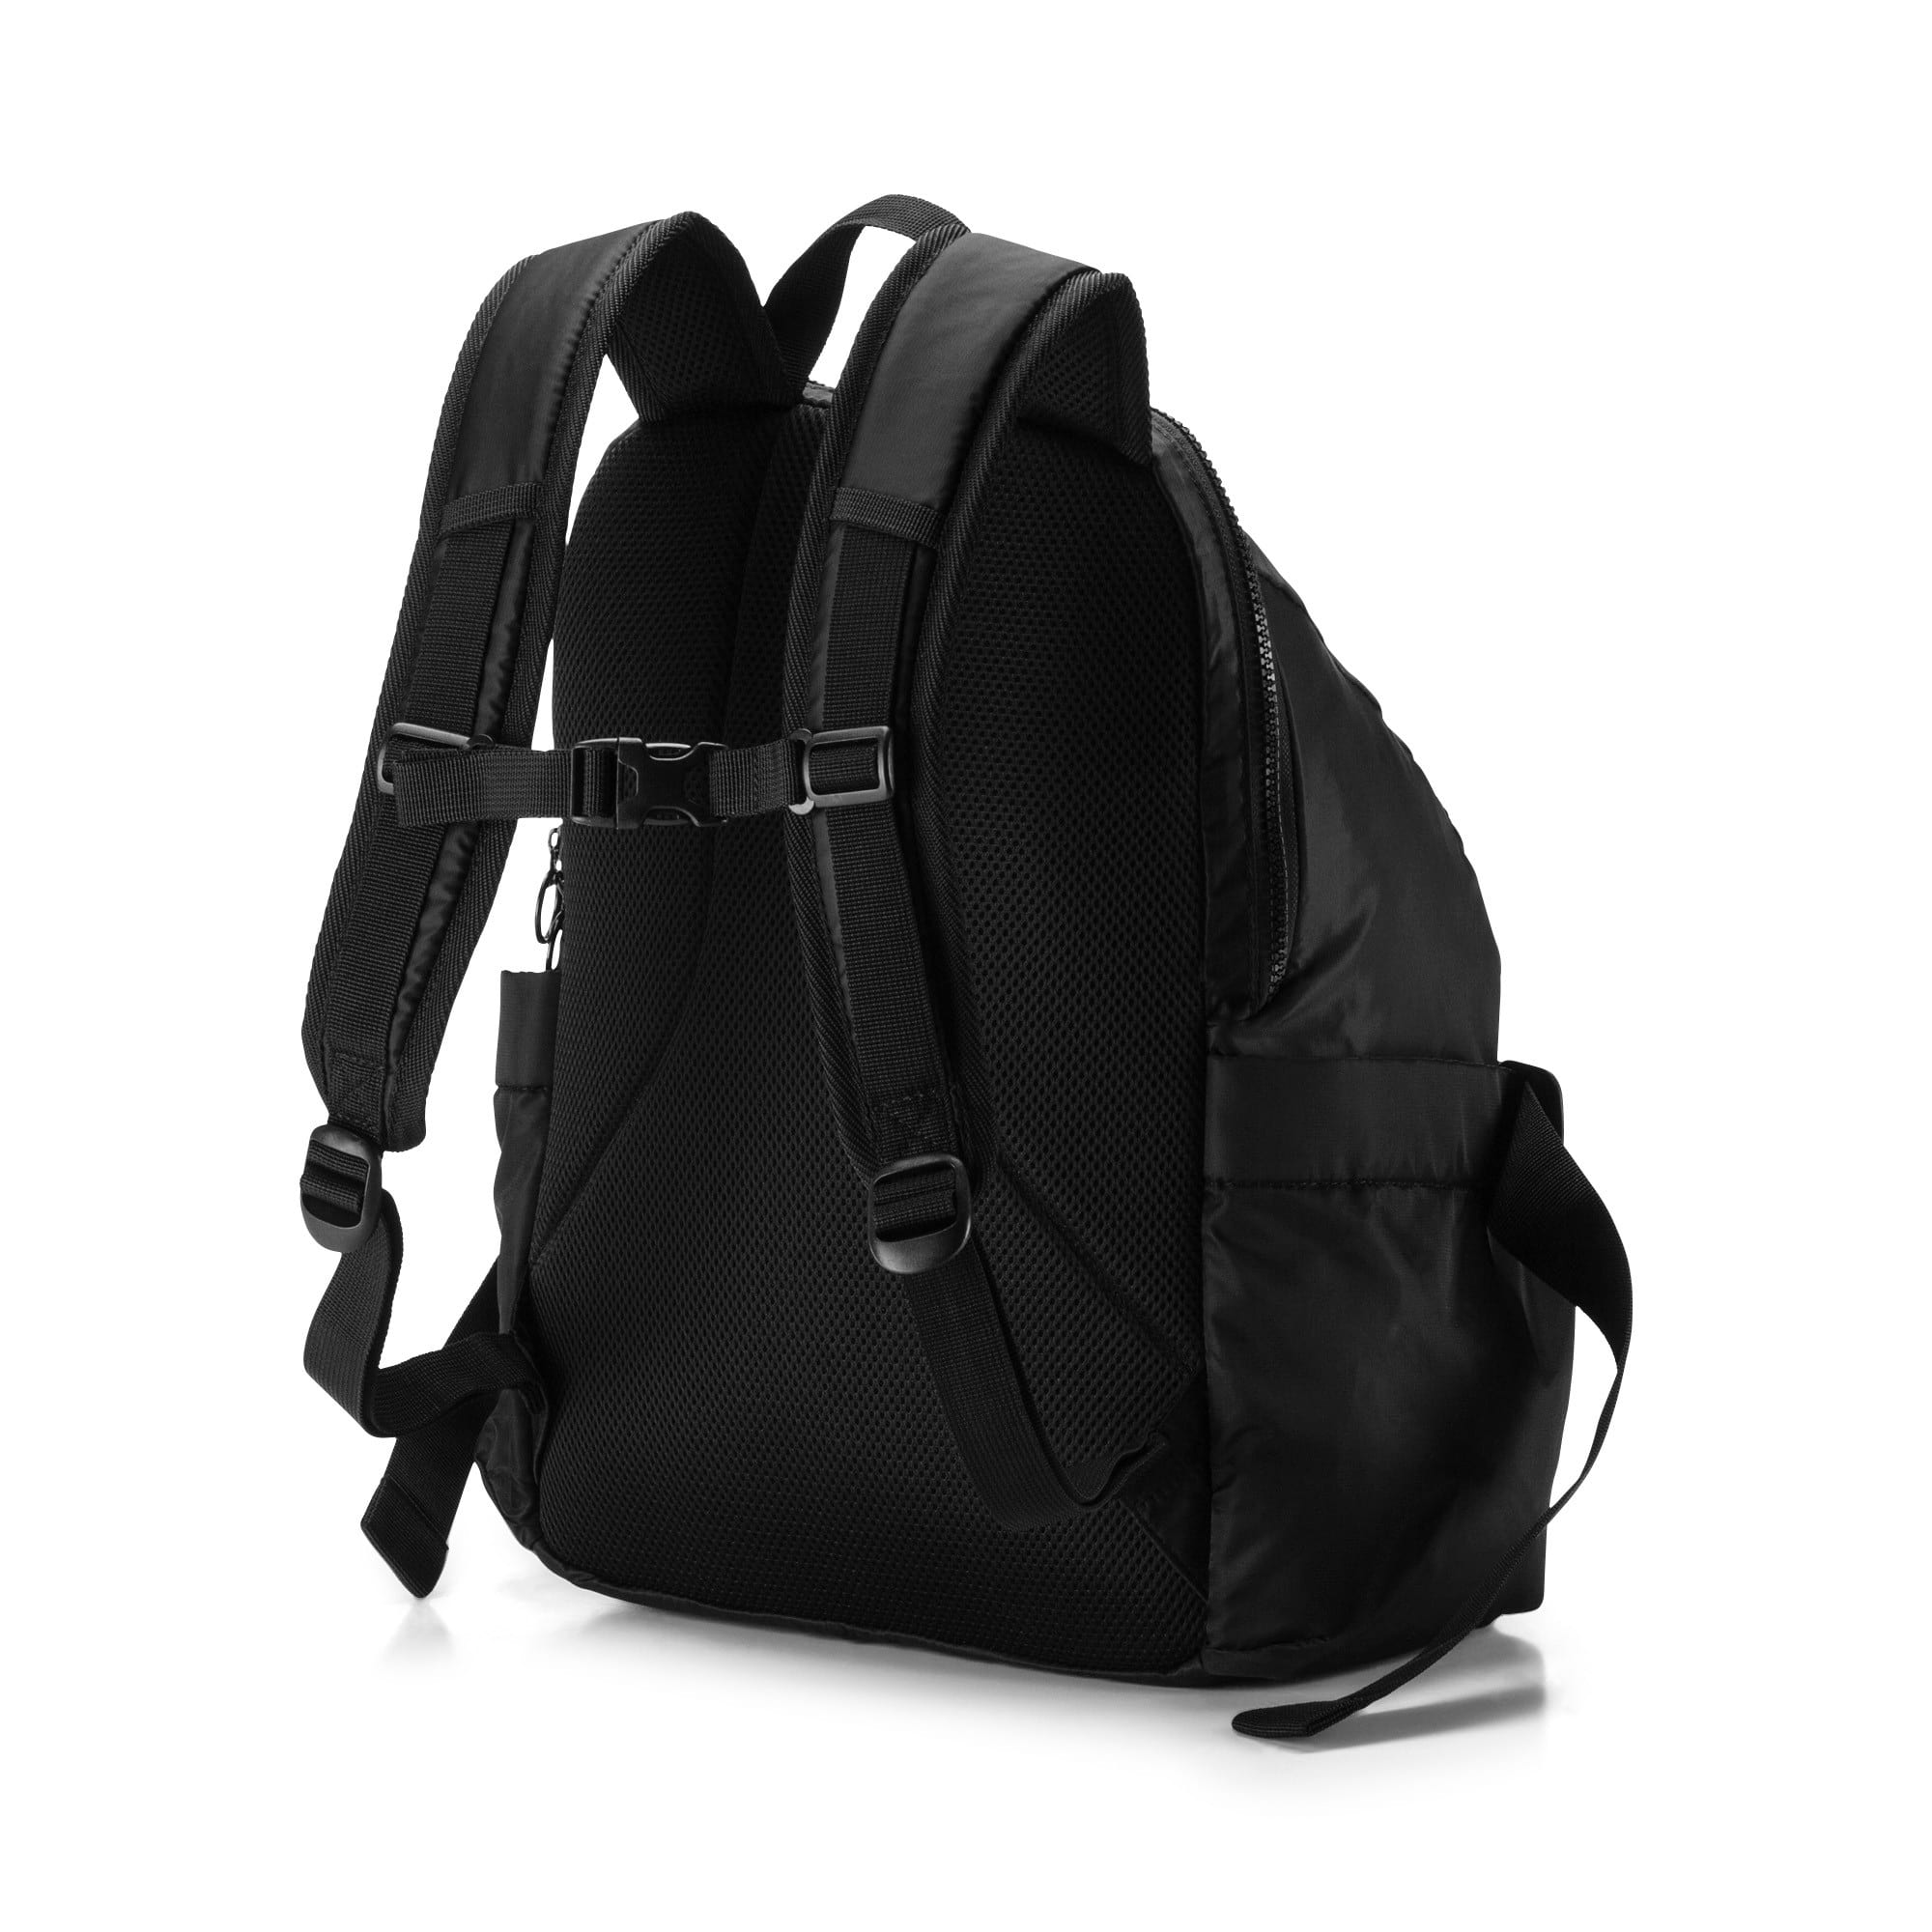 Thumbnail 3 of Cosmic Backpack, Puma Black, medium